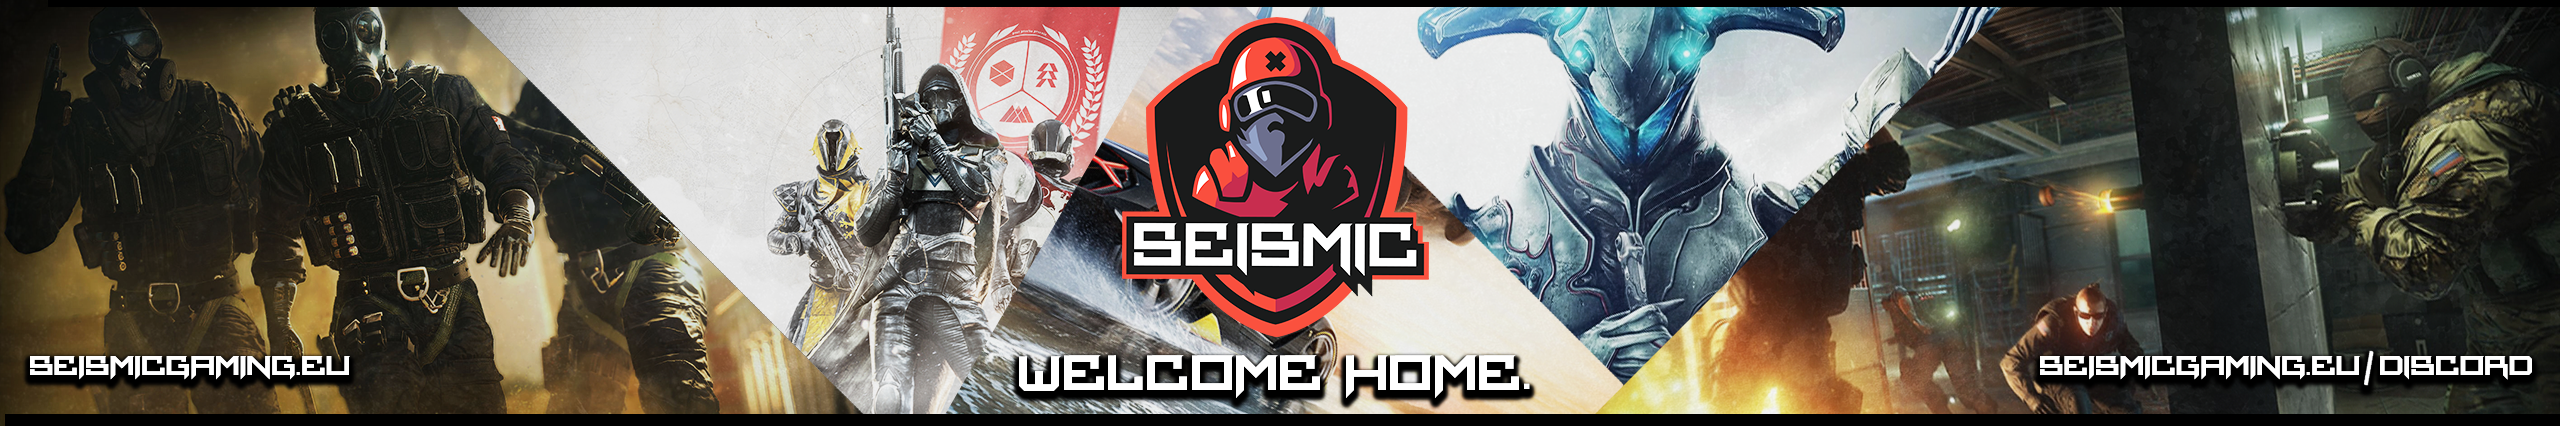 A][EU][PVP/PVE][CLASSIC] Seismic now recruiting for WoW Classic